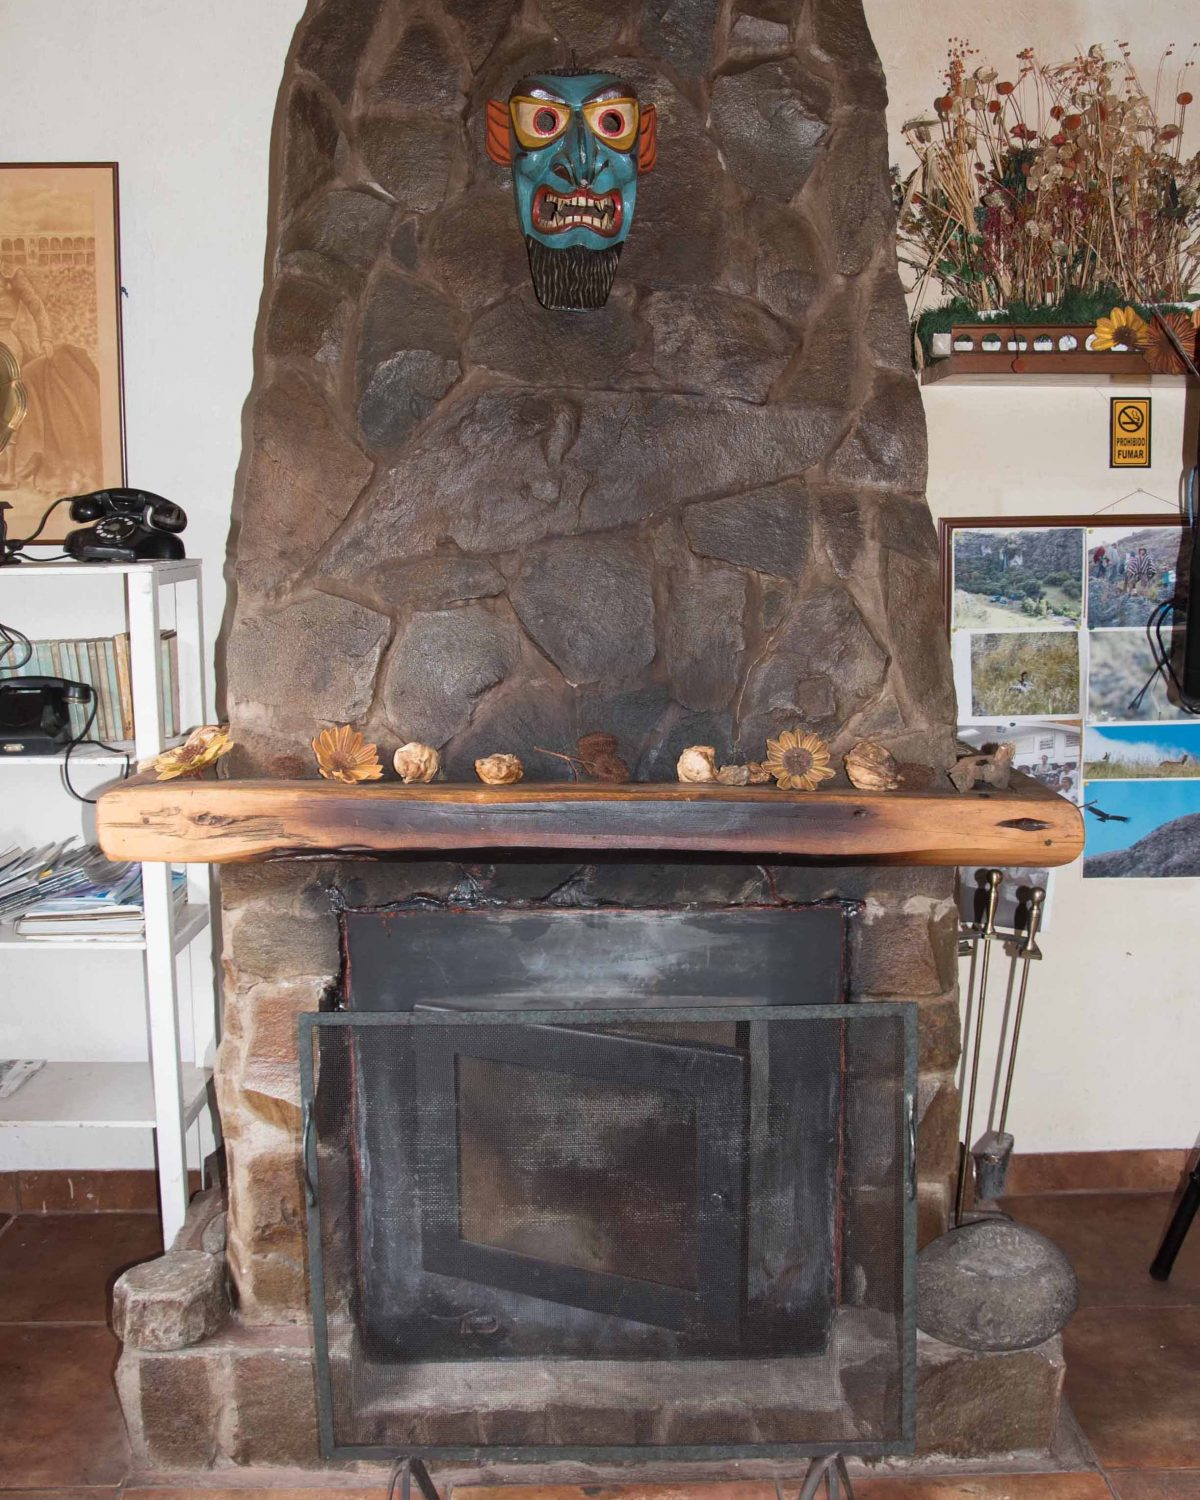 The fireplace in the dining room at Guayatra Lodge ©Angela Drake / Not Your Average American